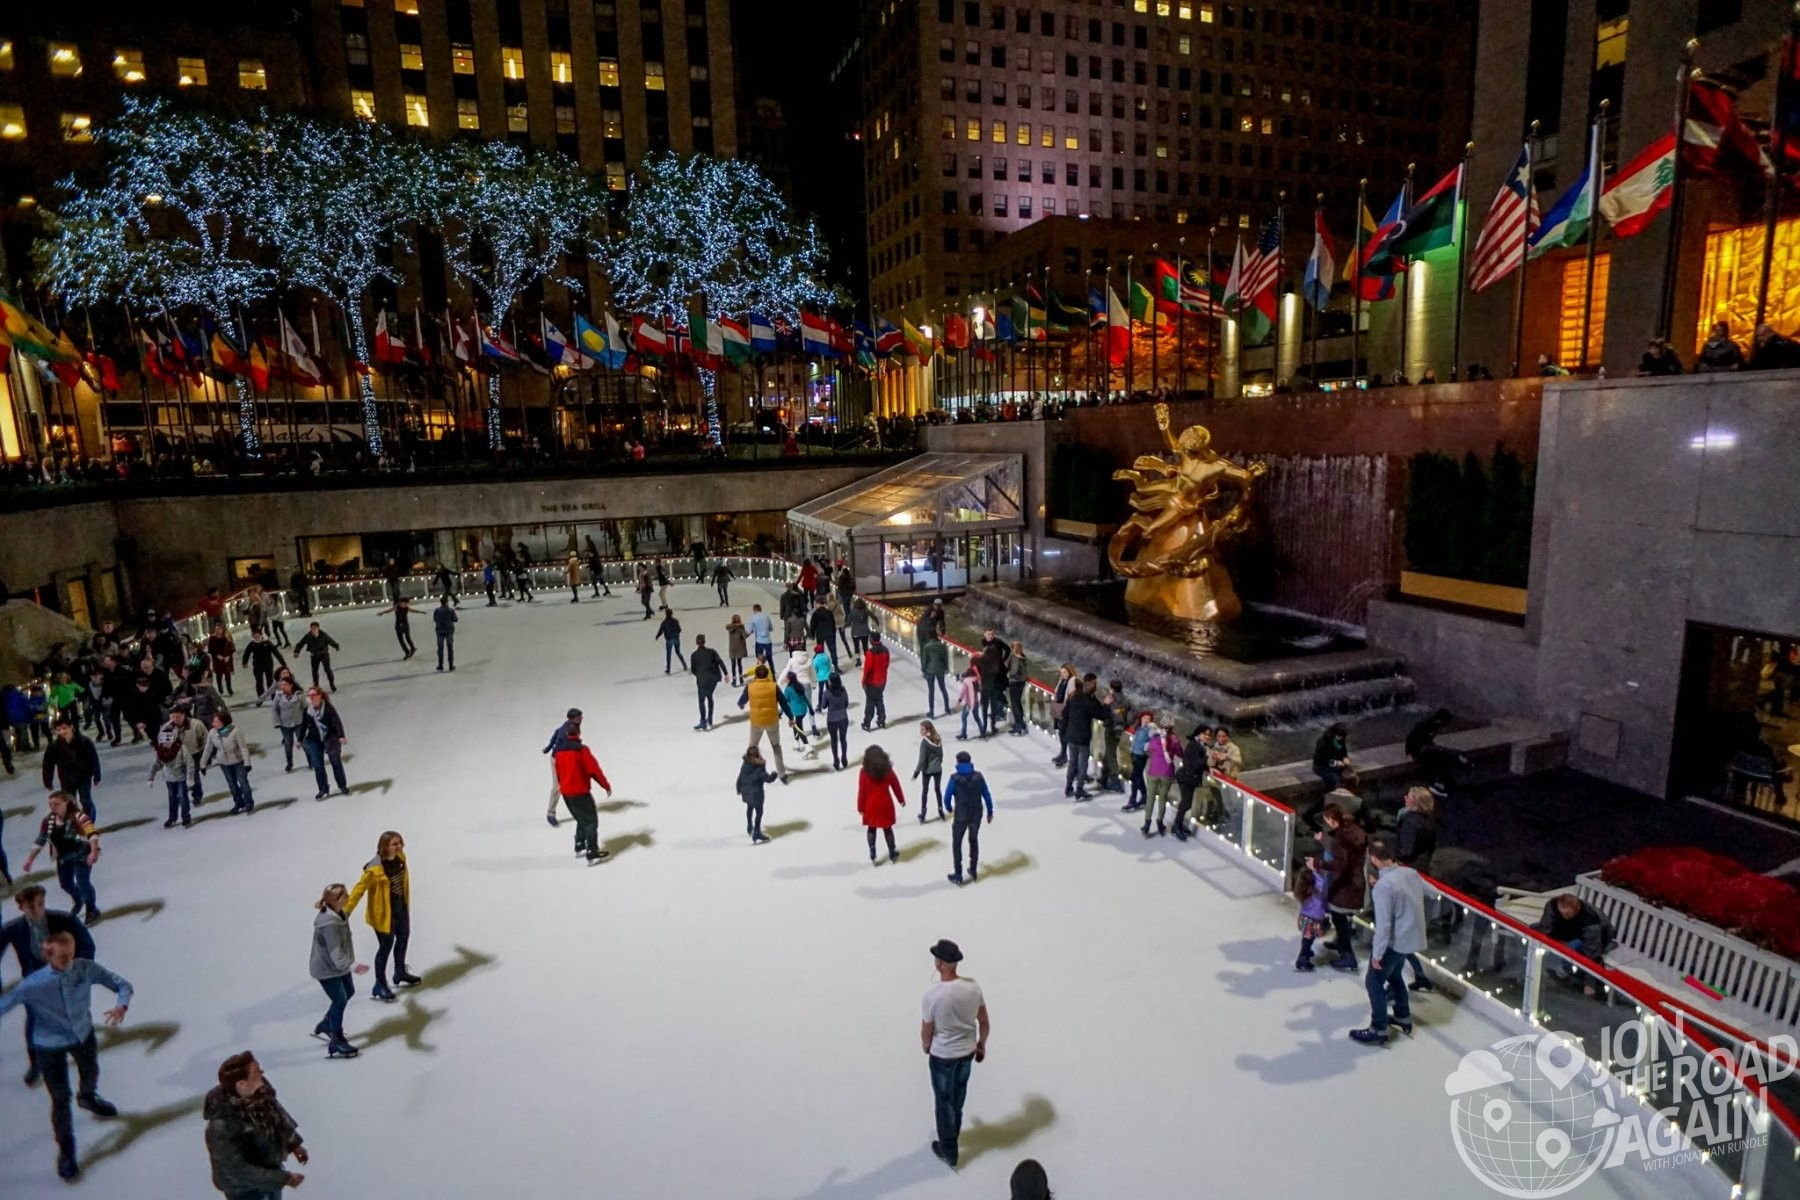 Ice Skating Rink and Rockefeller Center